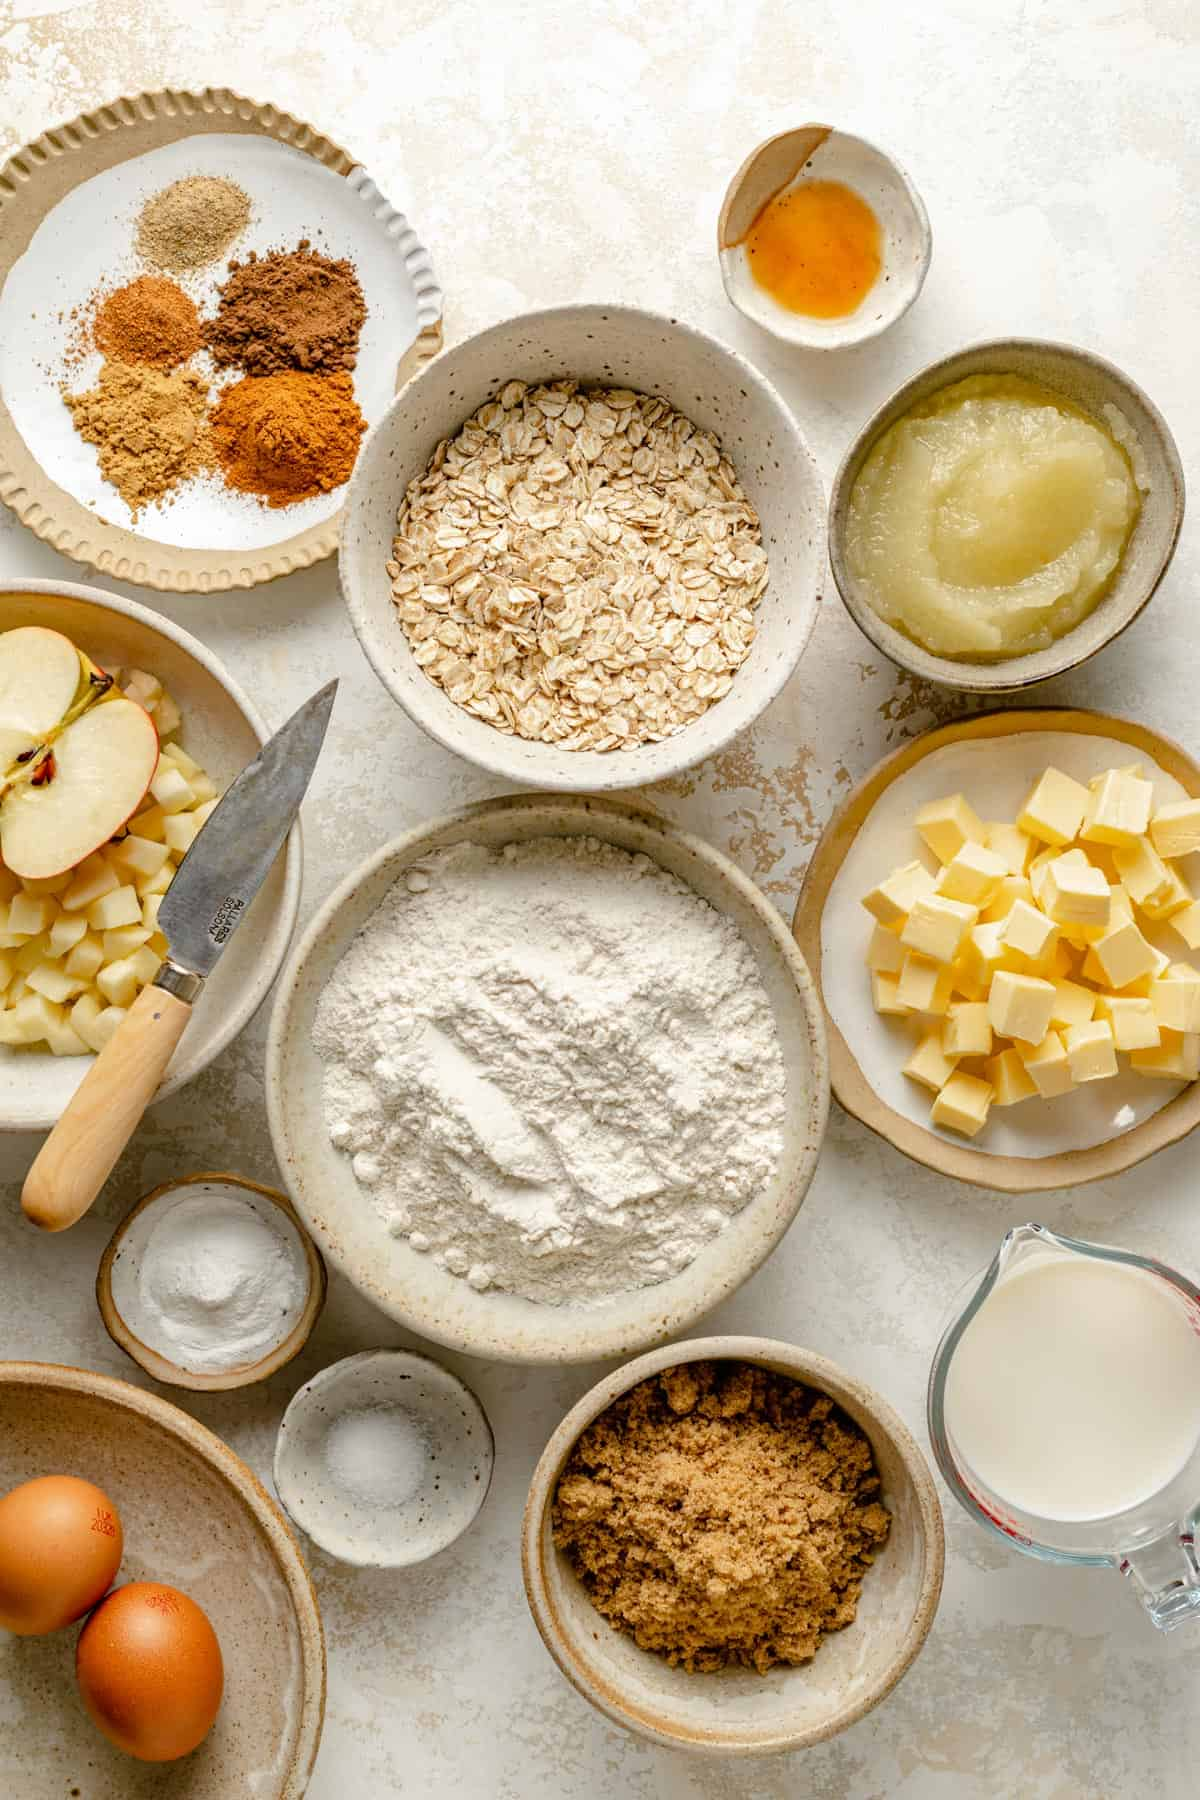 array of ingredients for the muffins in various bowls